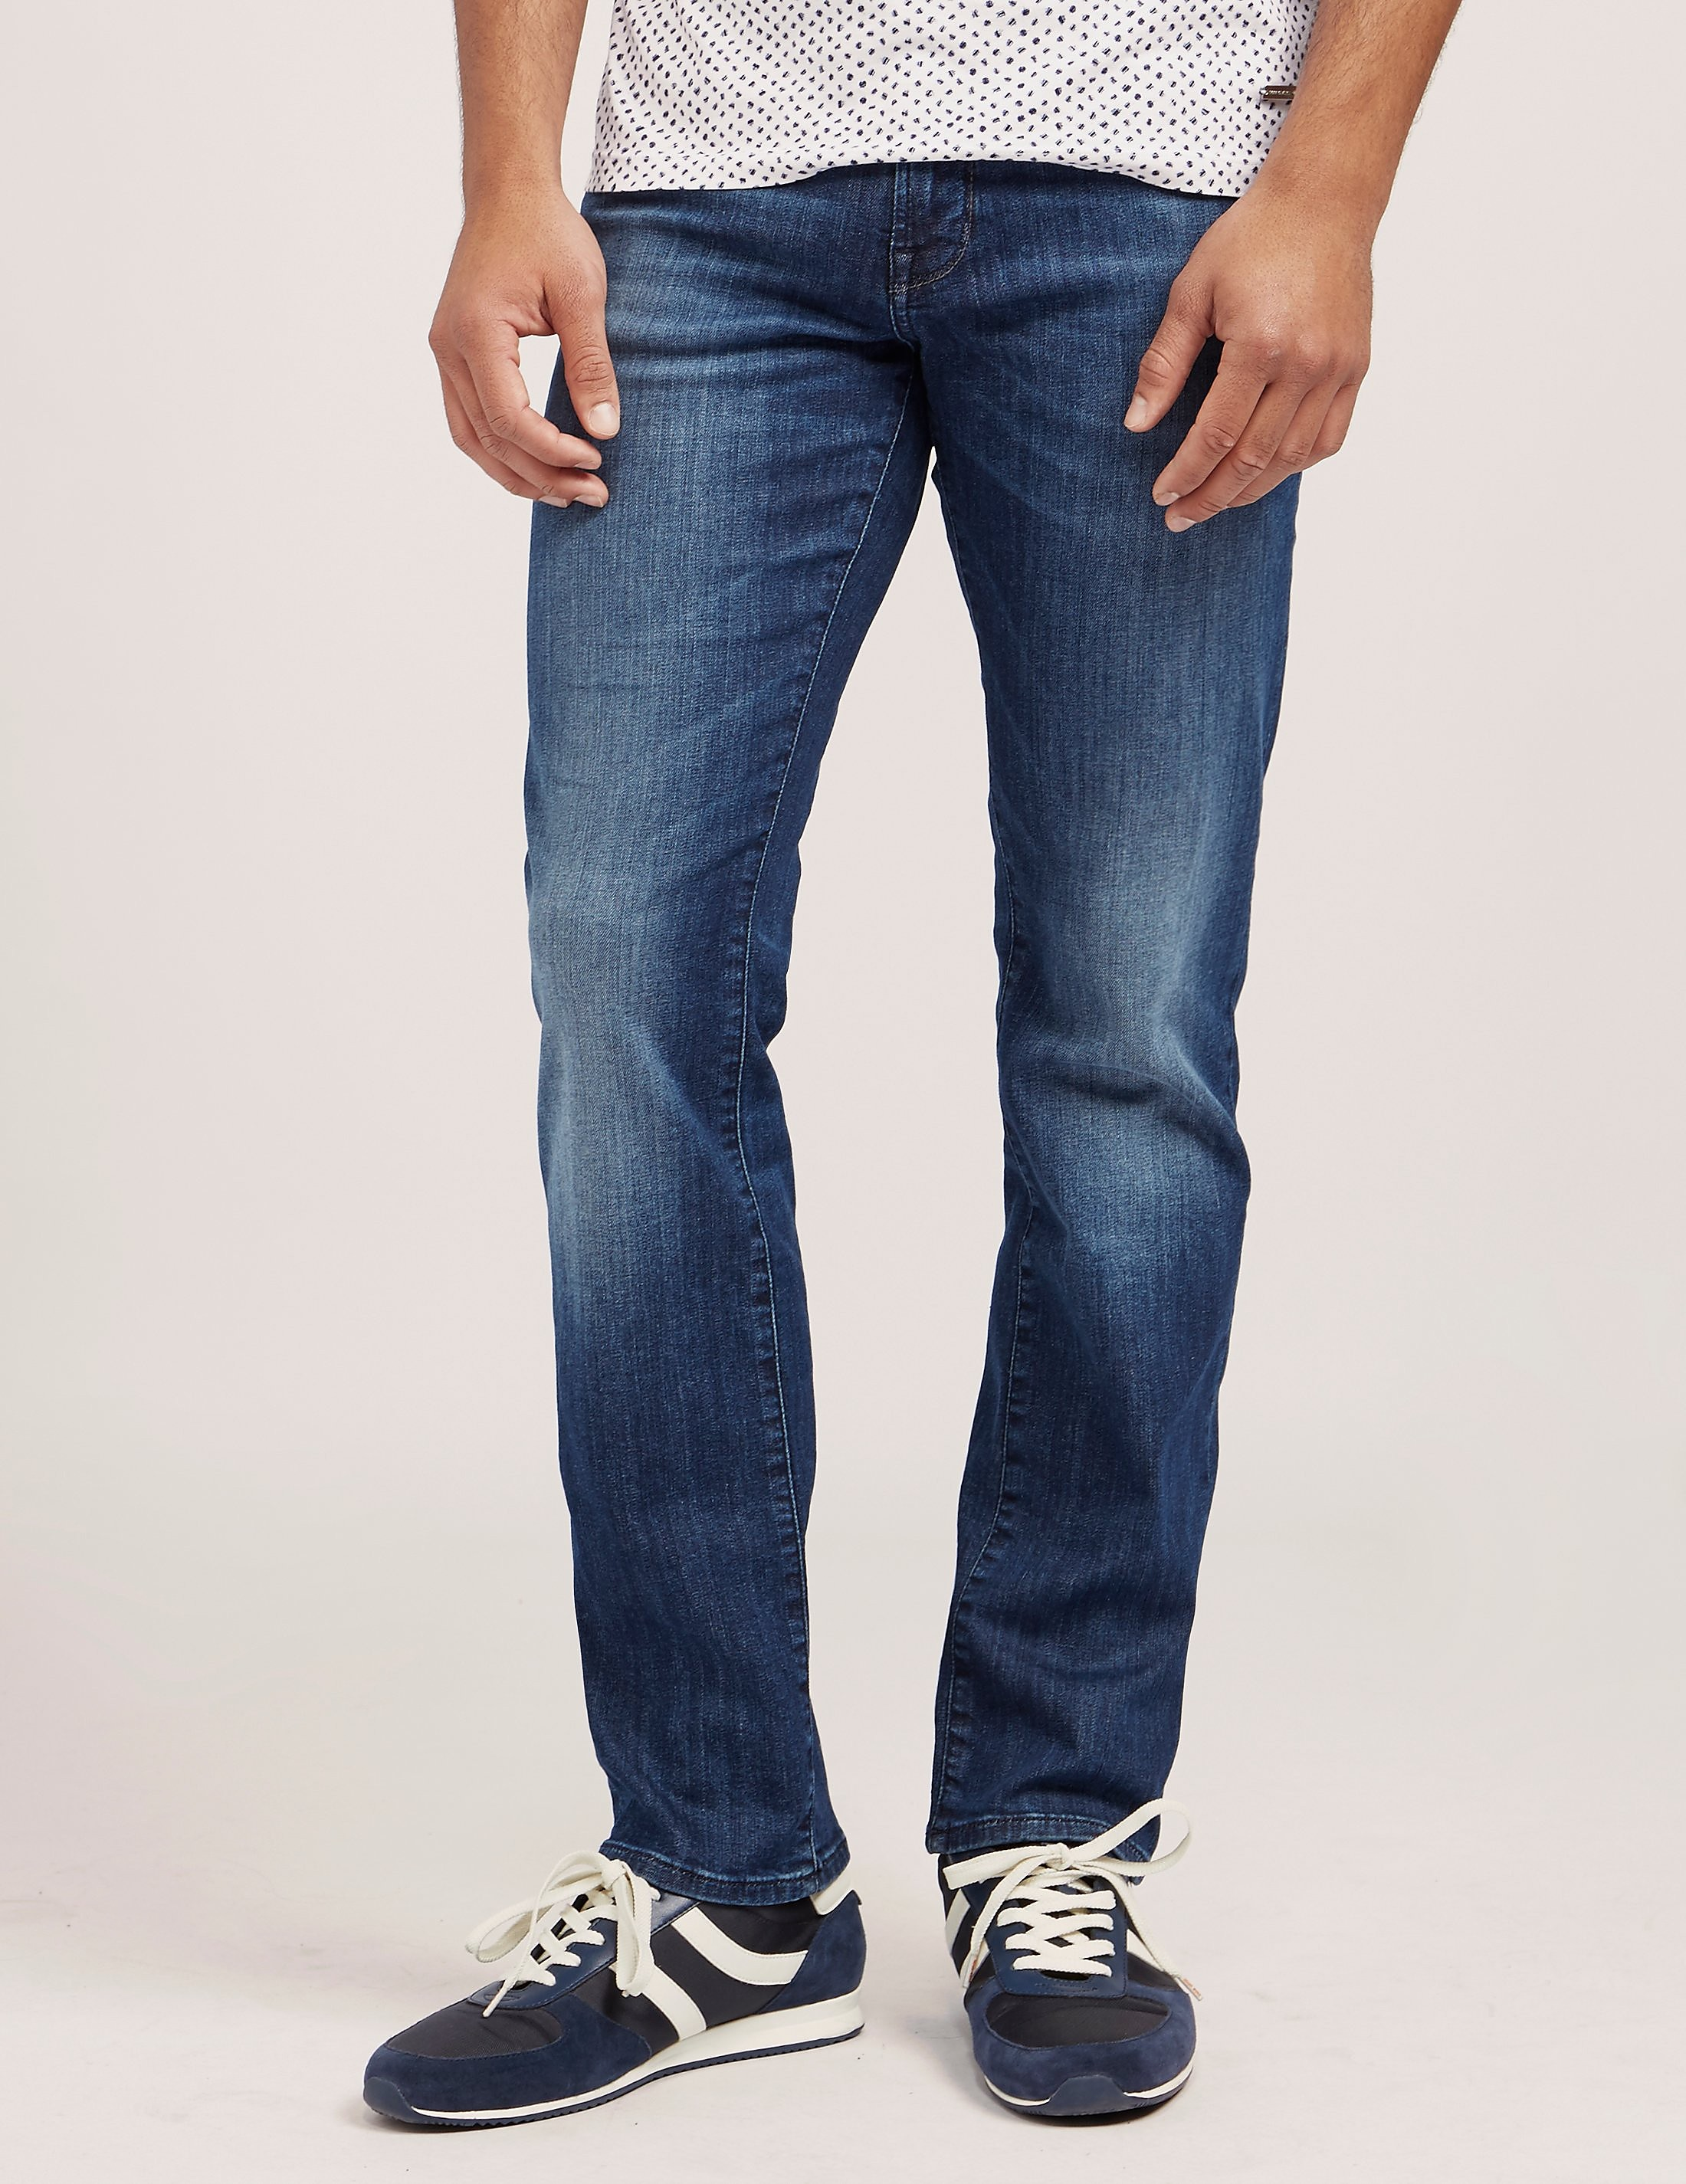 BOSS Orange 63 Denim Jeans